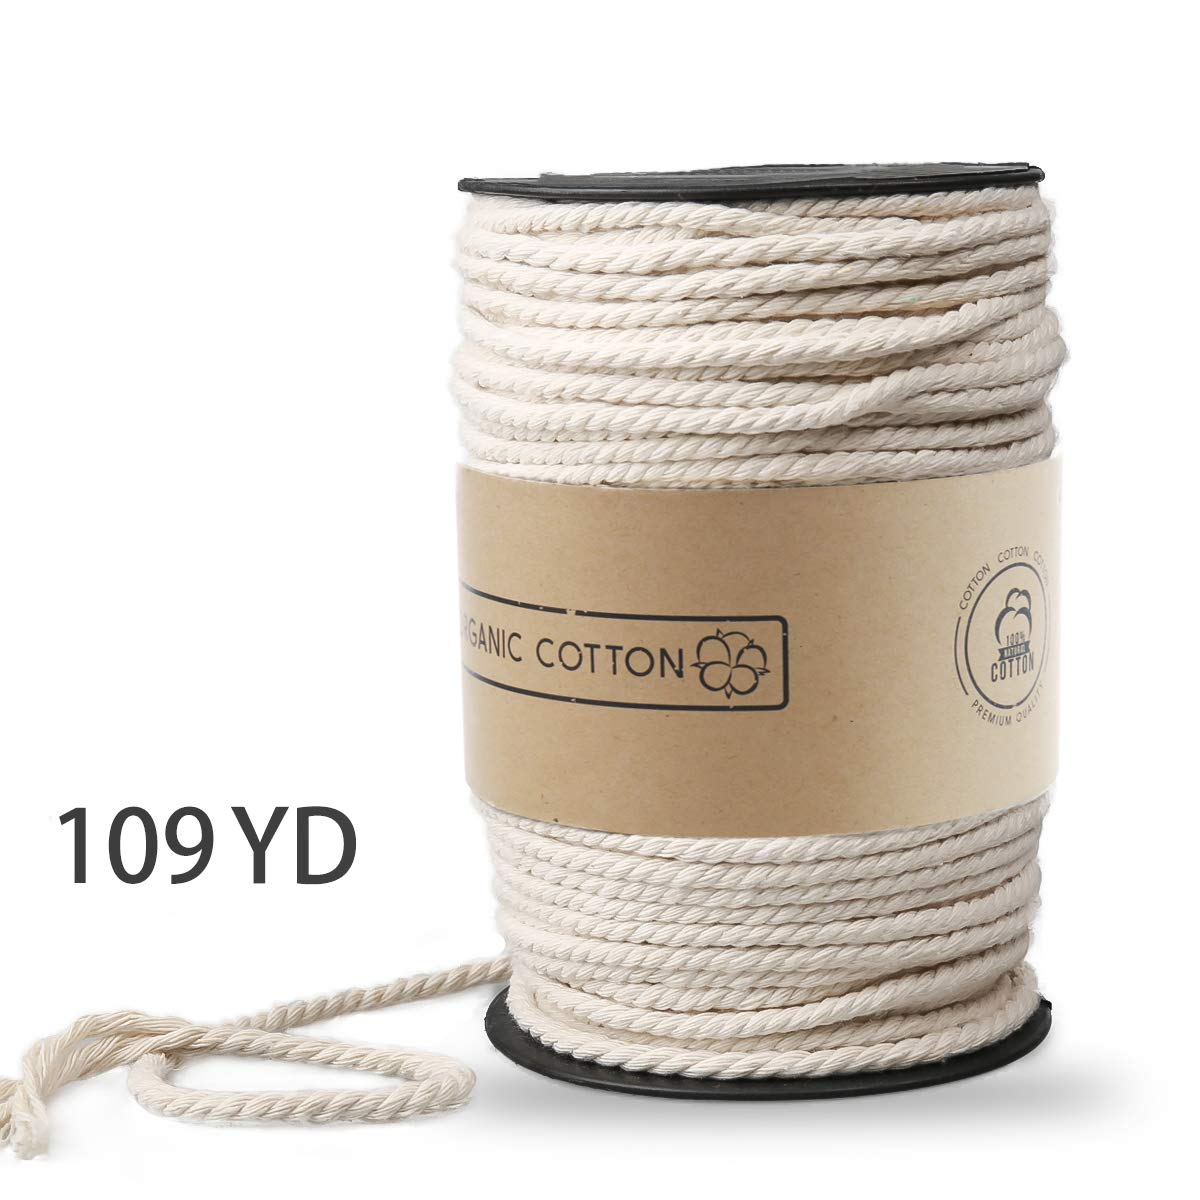 About 500m Natural Cotton Soft Unstained Rope for Handmade Plant Hanger Wall Hanging Craft Making ZOUTOG 2mm x 547 yd Macrame Rope